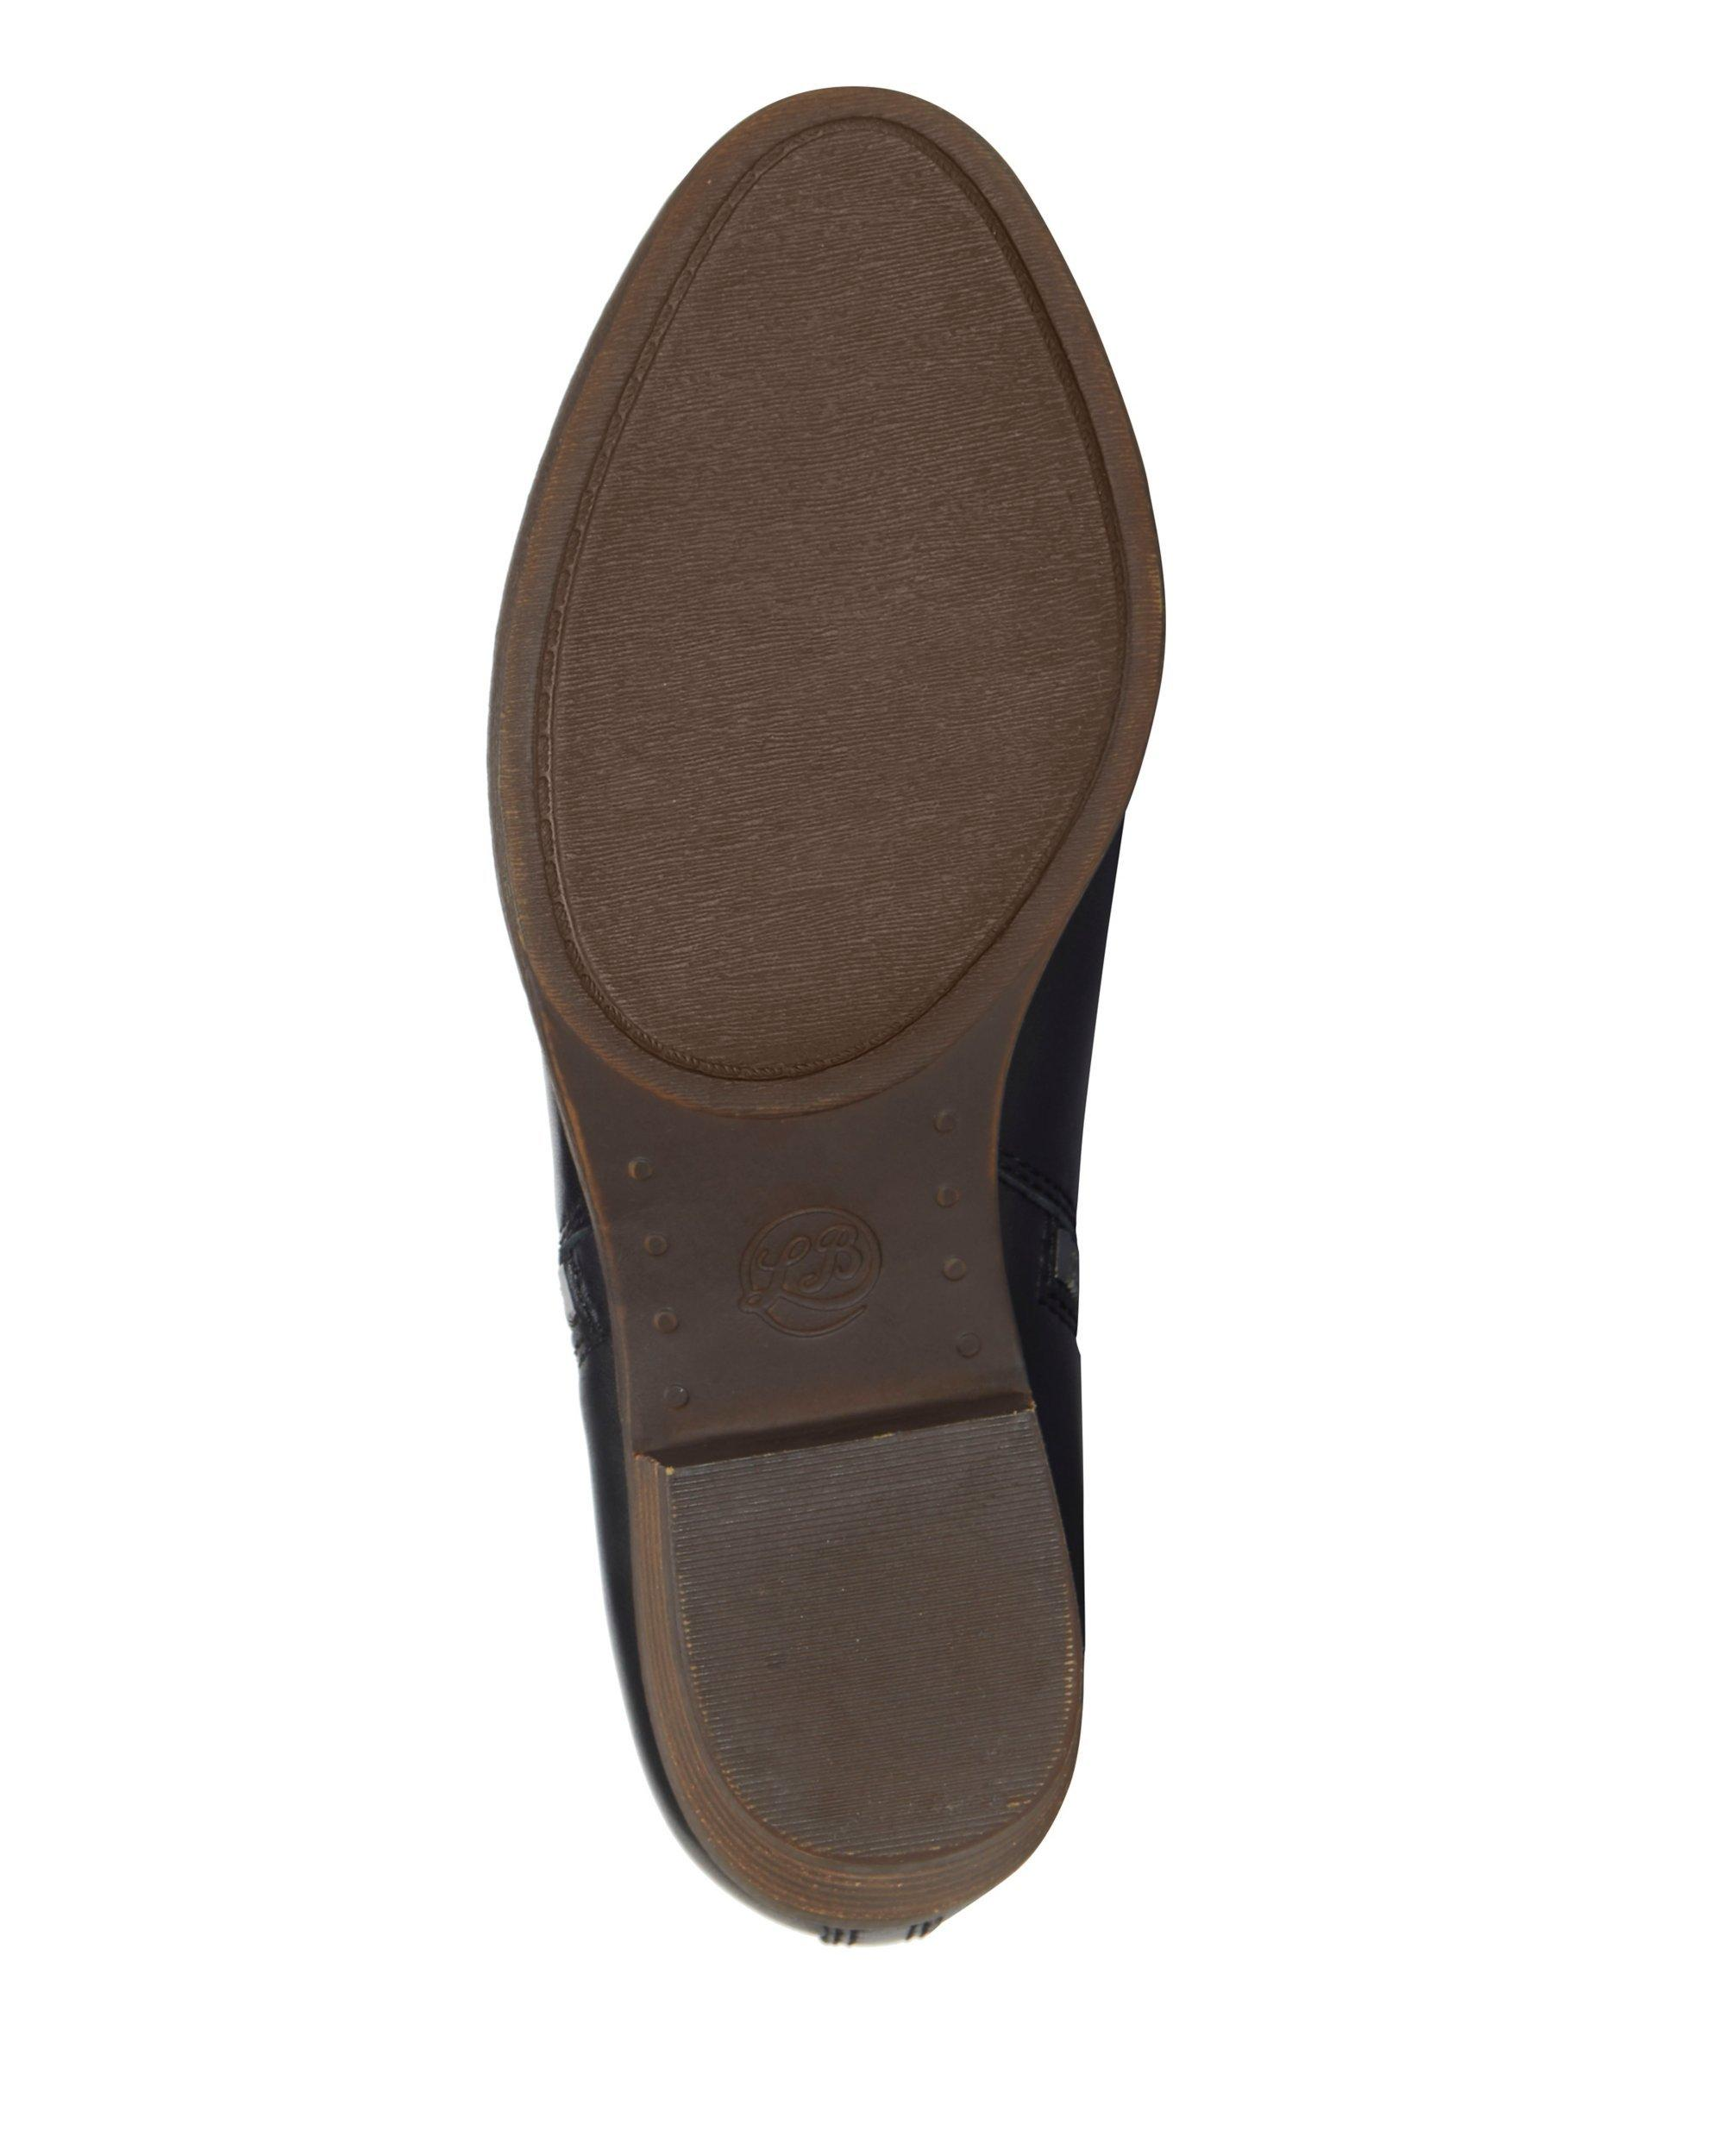 BASEL LEATHER FLAT BOOTIE, image 7